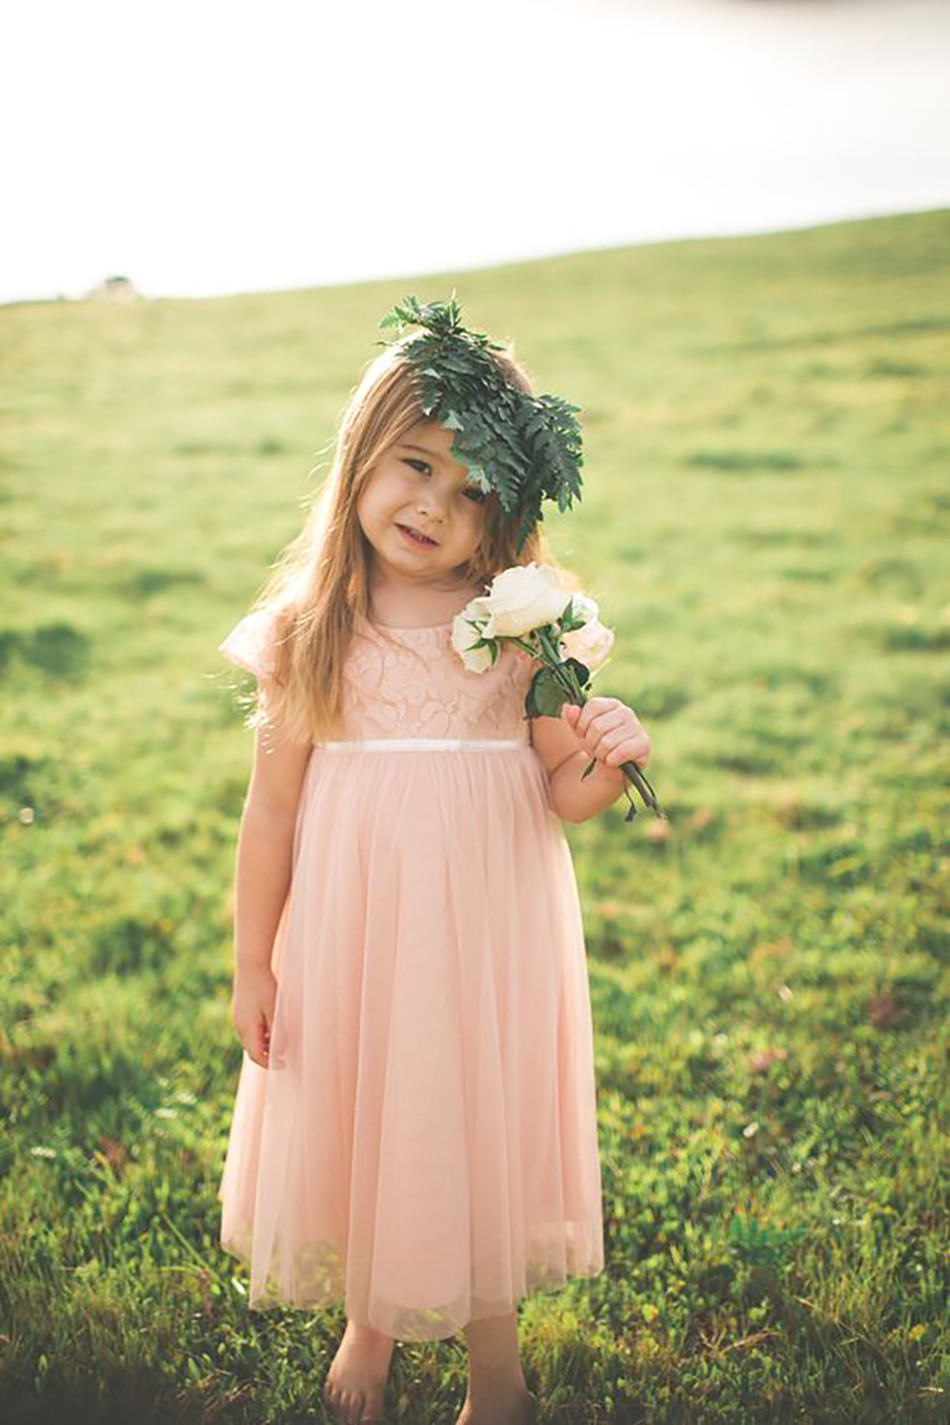 Wedding ideas by colour: Peach bridesmaids dresses - Flower girl | CHWV